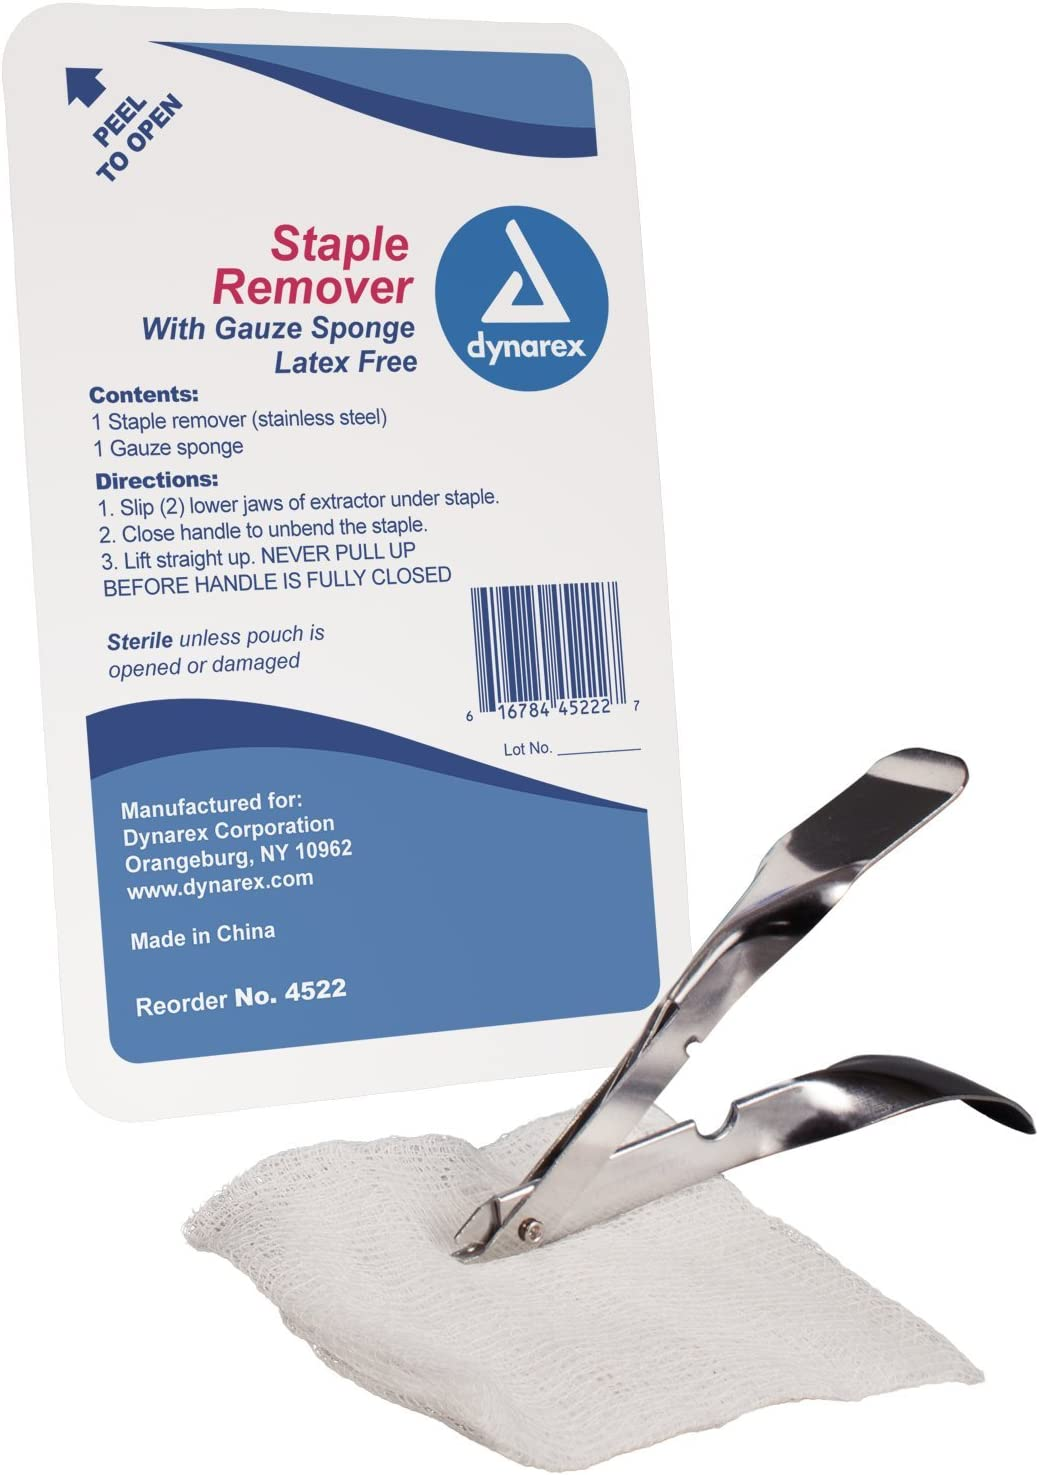 Staple Remover Kit: Home Improvement